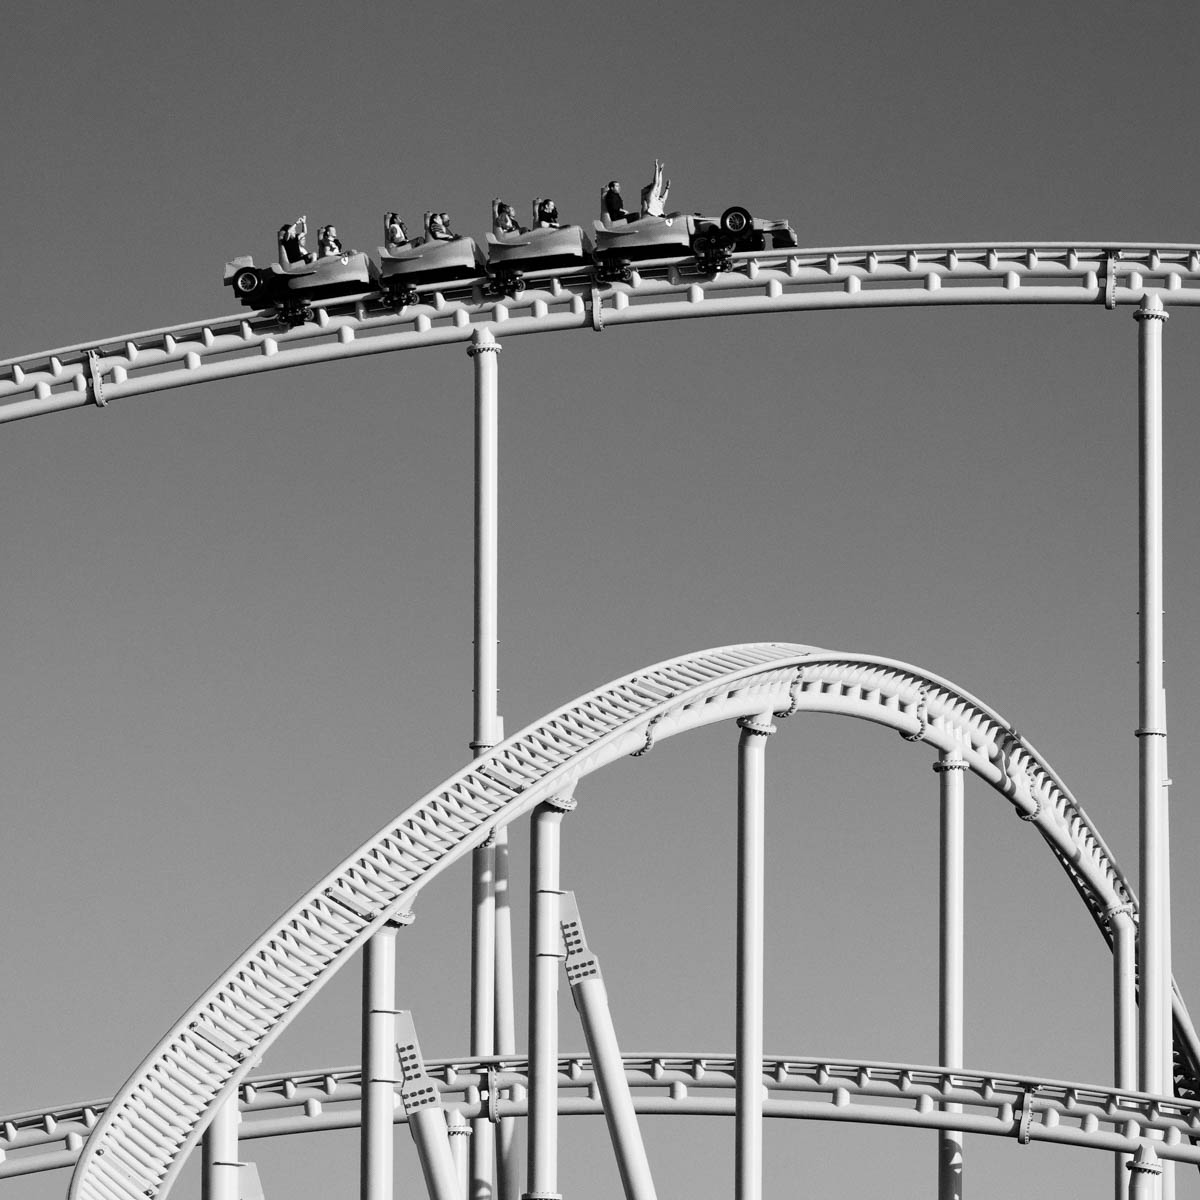 The Fastest Rollercoaster in the World, part of the project From the inside out by Duncan Chard